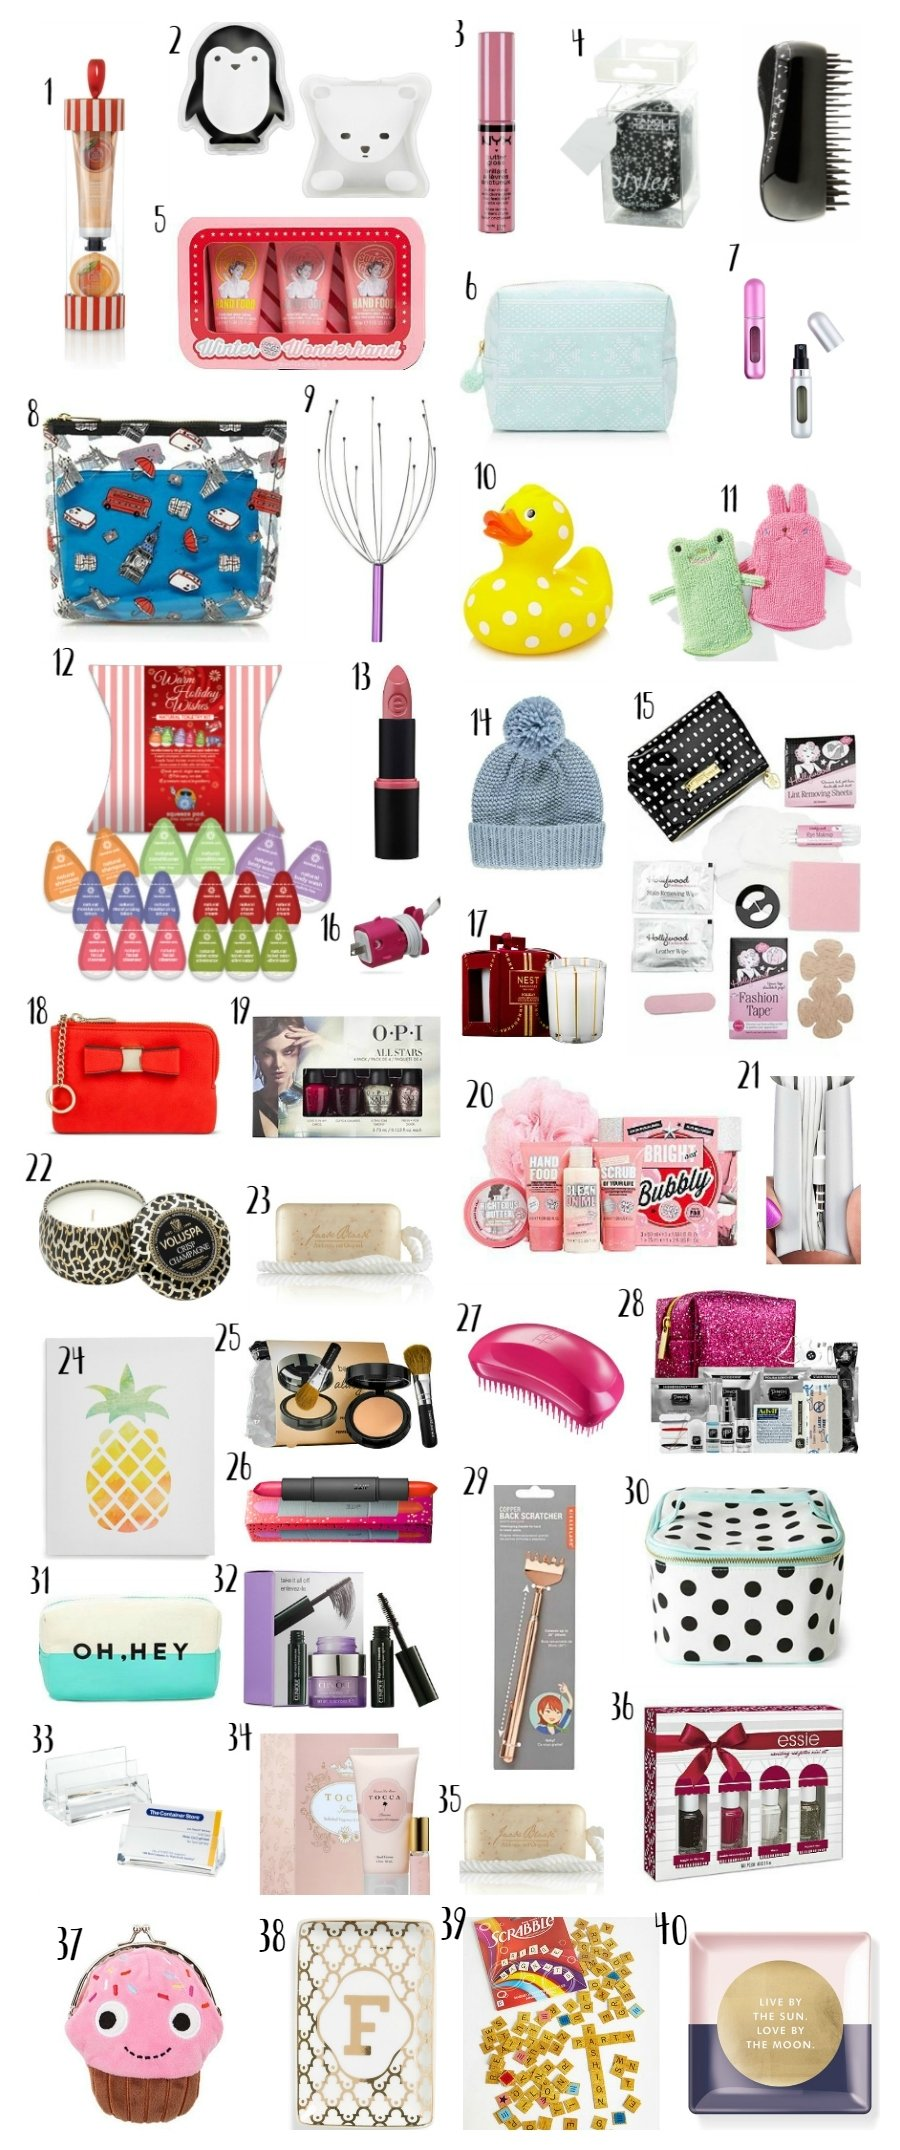 10 Trendy Stocking Stuffers Ideas For Women christmas stocking stuffer ideas ashley brooke nicholas 1 2020